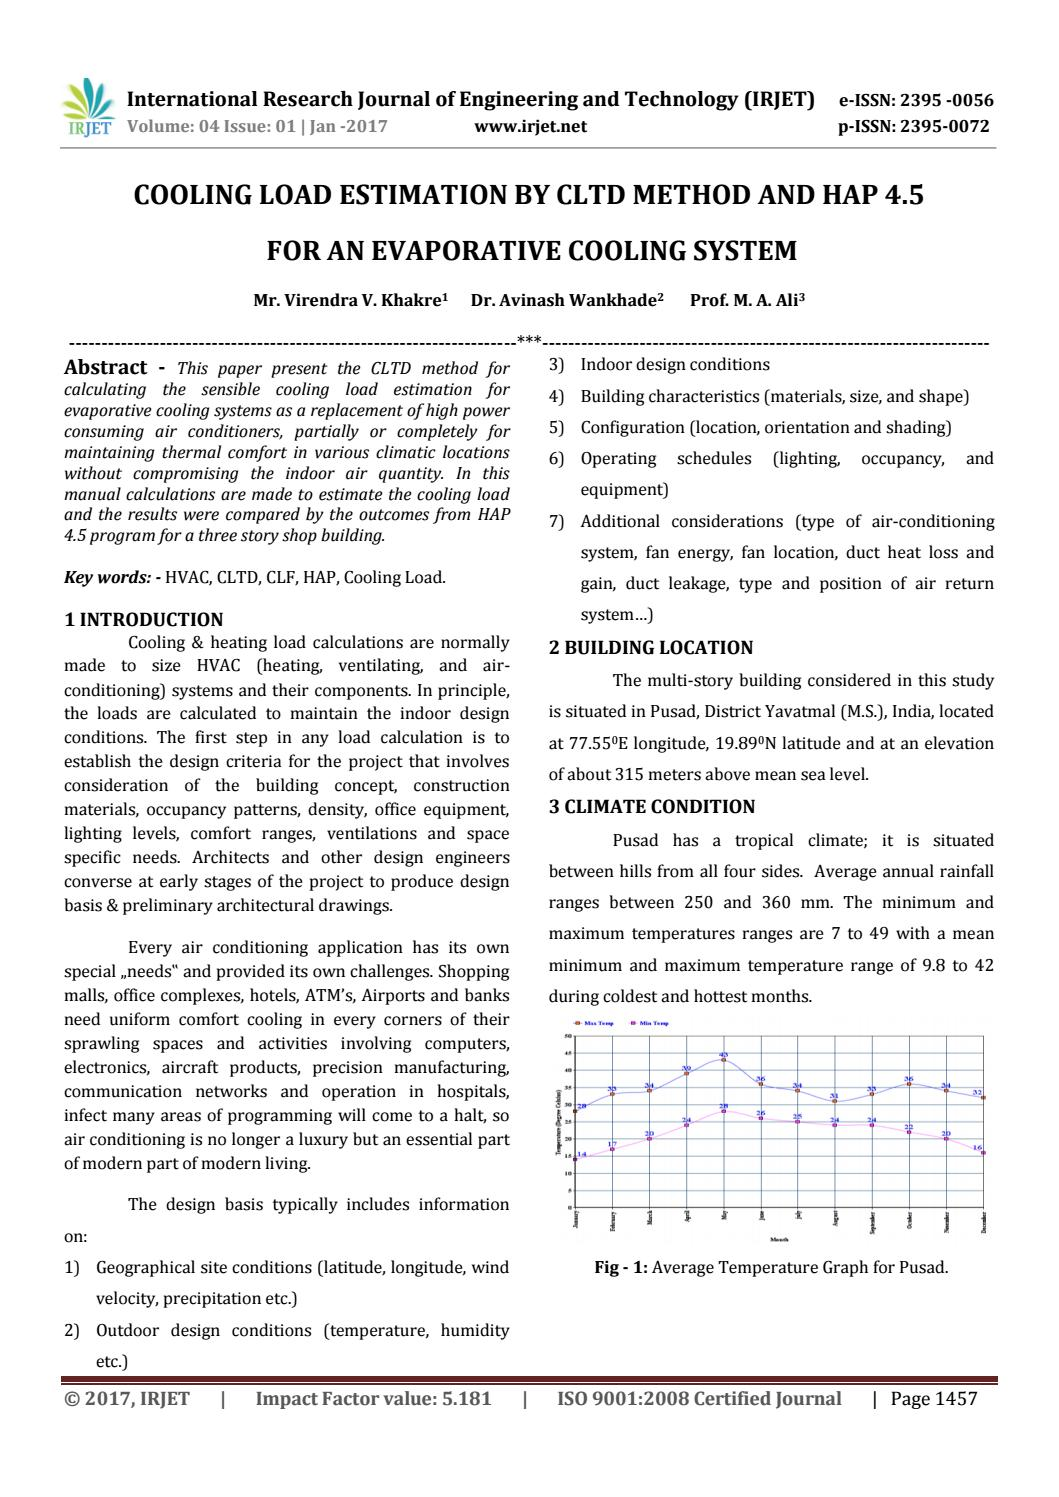 Cooling load estimation by CLTD method and HAP 4 5 for an